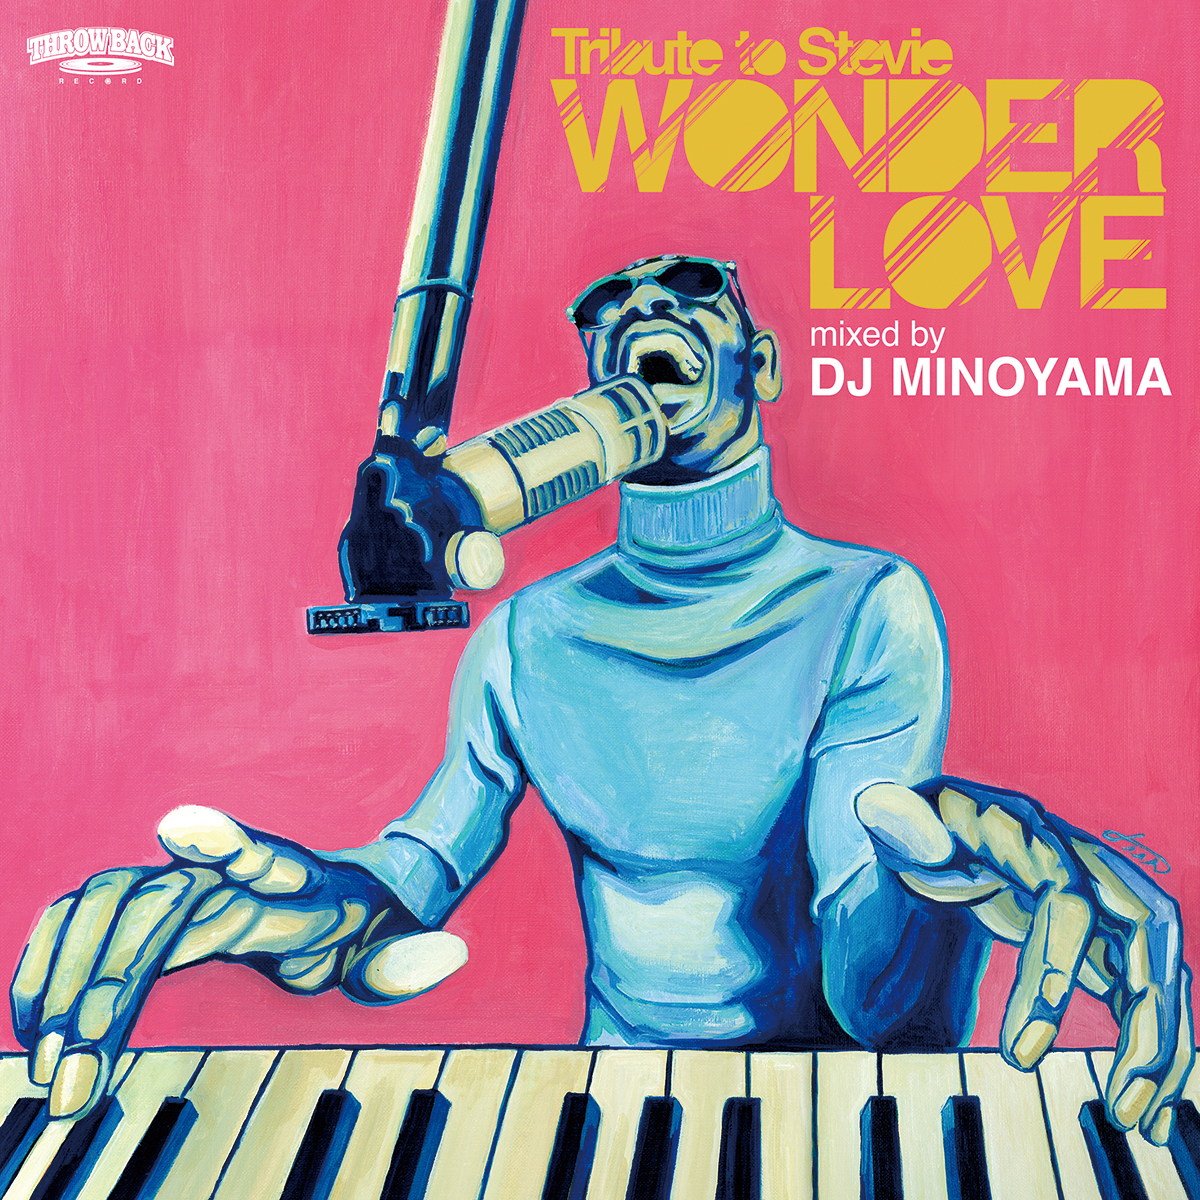 [MIX CD] DJ MINOYAMA / WONDER LOVE -Tribute to Stevie-